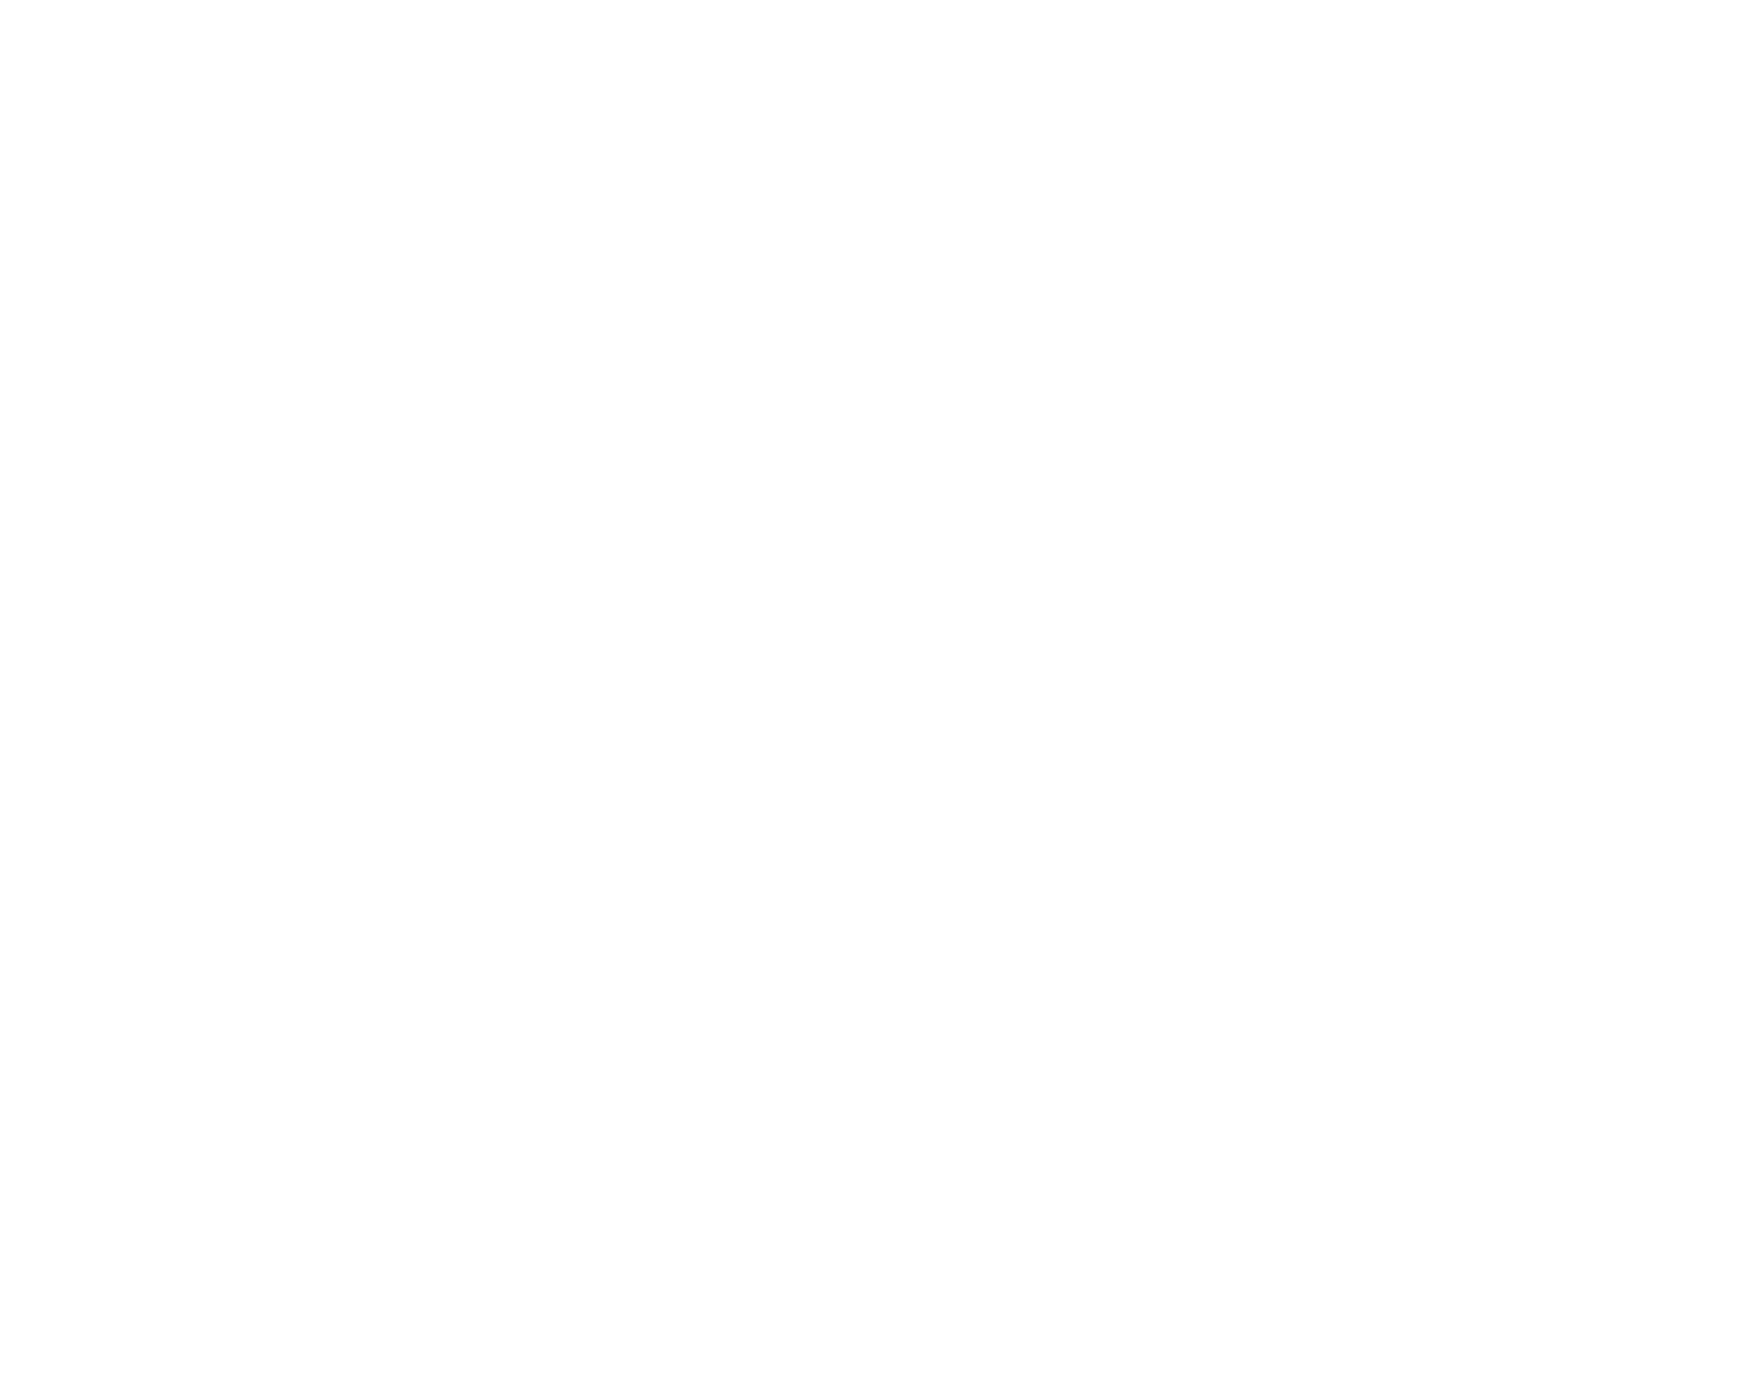 Carla Axtman Photography